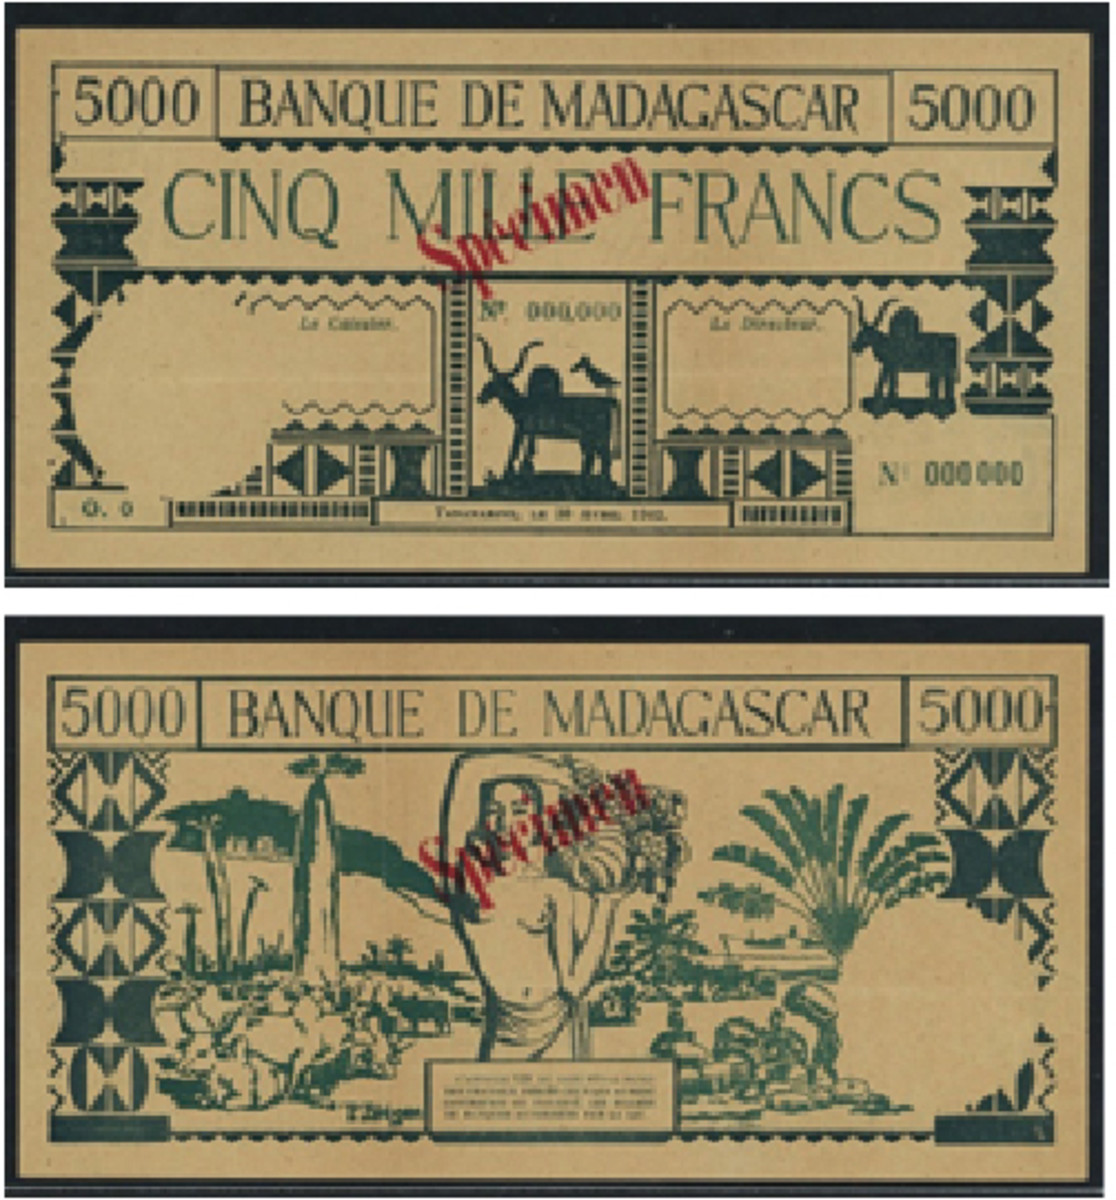 Extremely rare WWII Banque de Madagascar 5000 francs specimen of April 1942 (P-44; S&B-612s) that realized $25,180 in PCGS 35 Very Fine at Spink's October sale of the Ibrahim Salem Collection. (Image courtesy and © Spink, London)